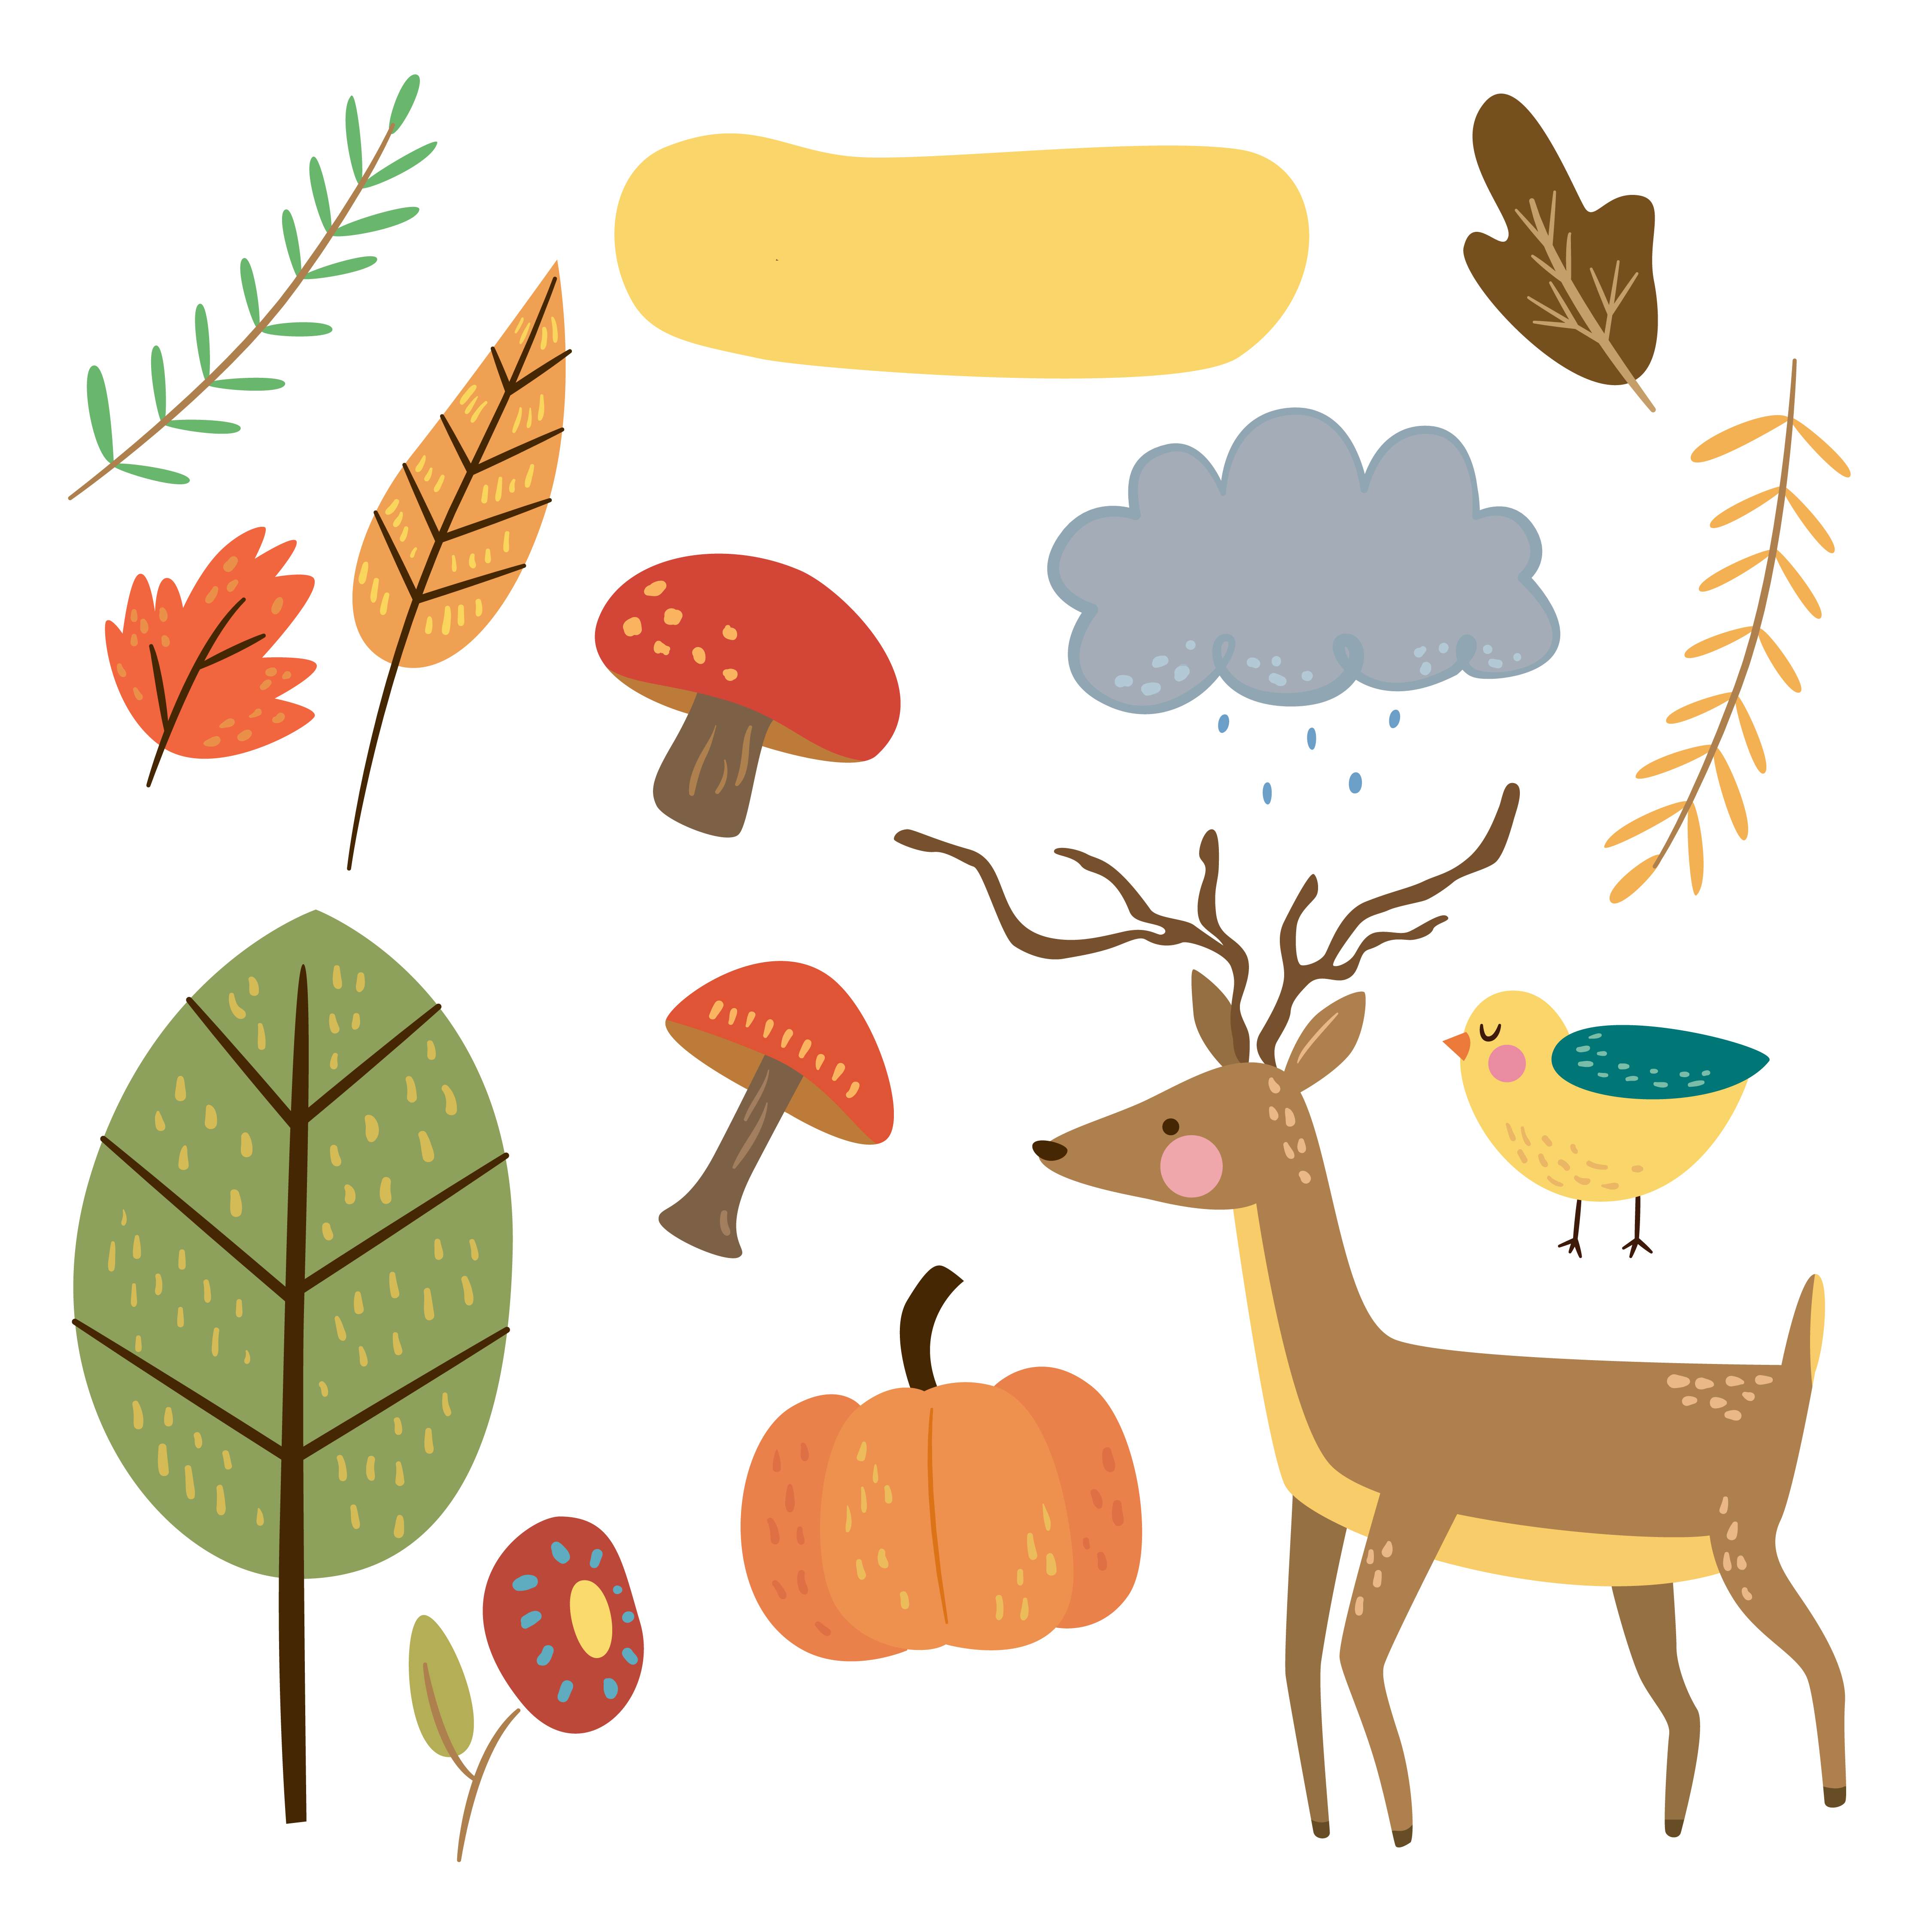 Free wildlife gallery images. Handprint clipart cute